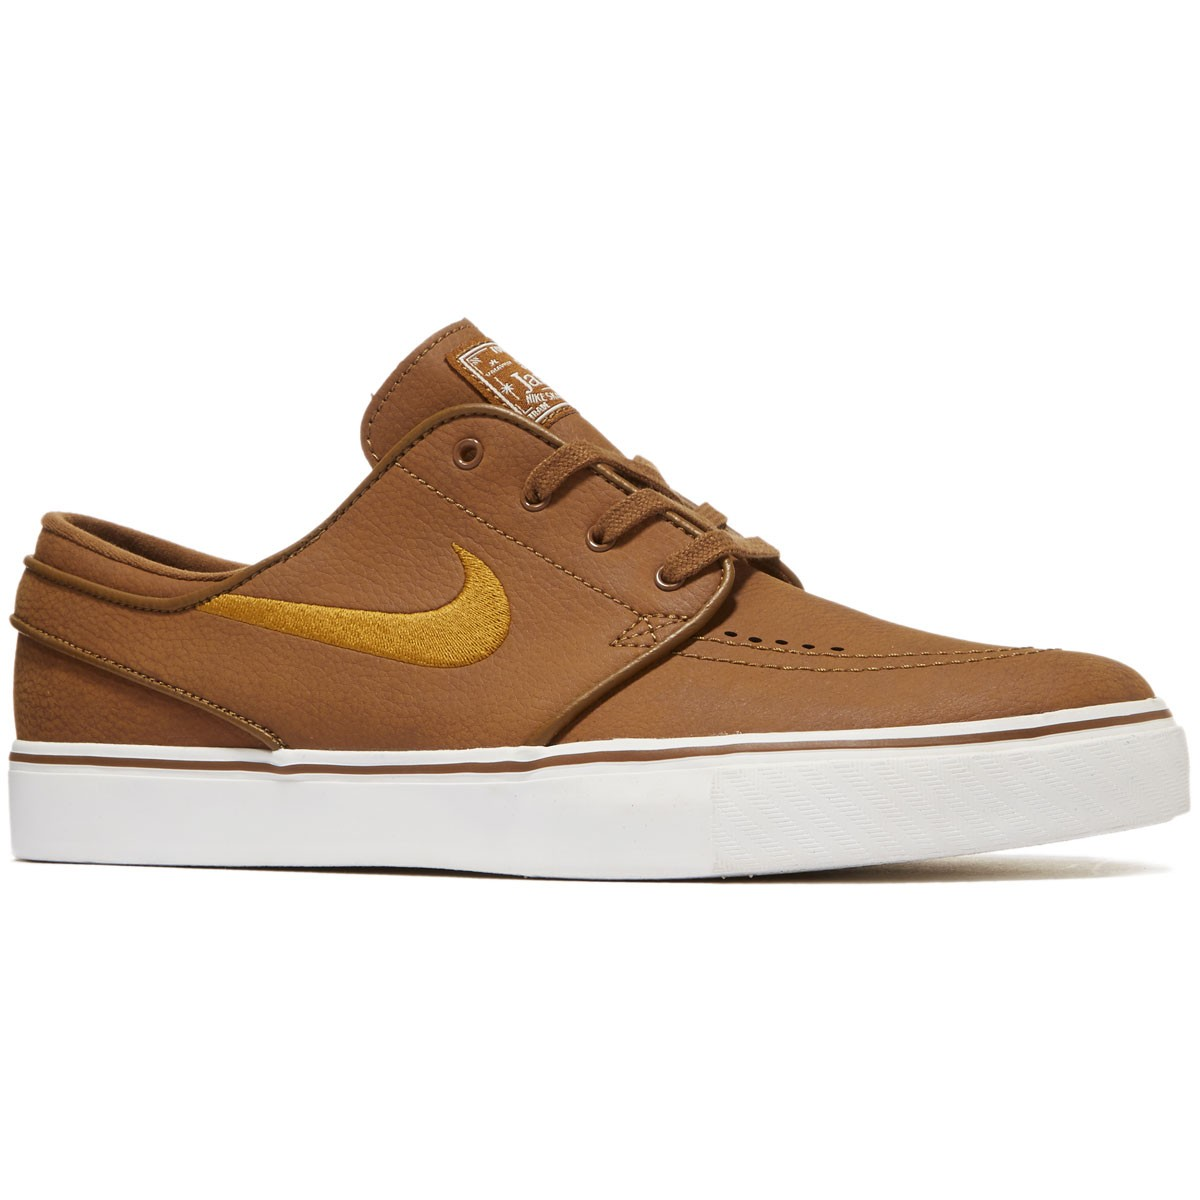 Nike® Leather Shoes at Stylight: Best sellers up to −60% products in stock Variety of styles & colors» Shop now!